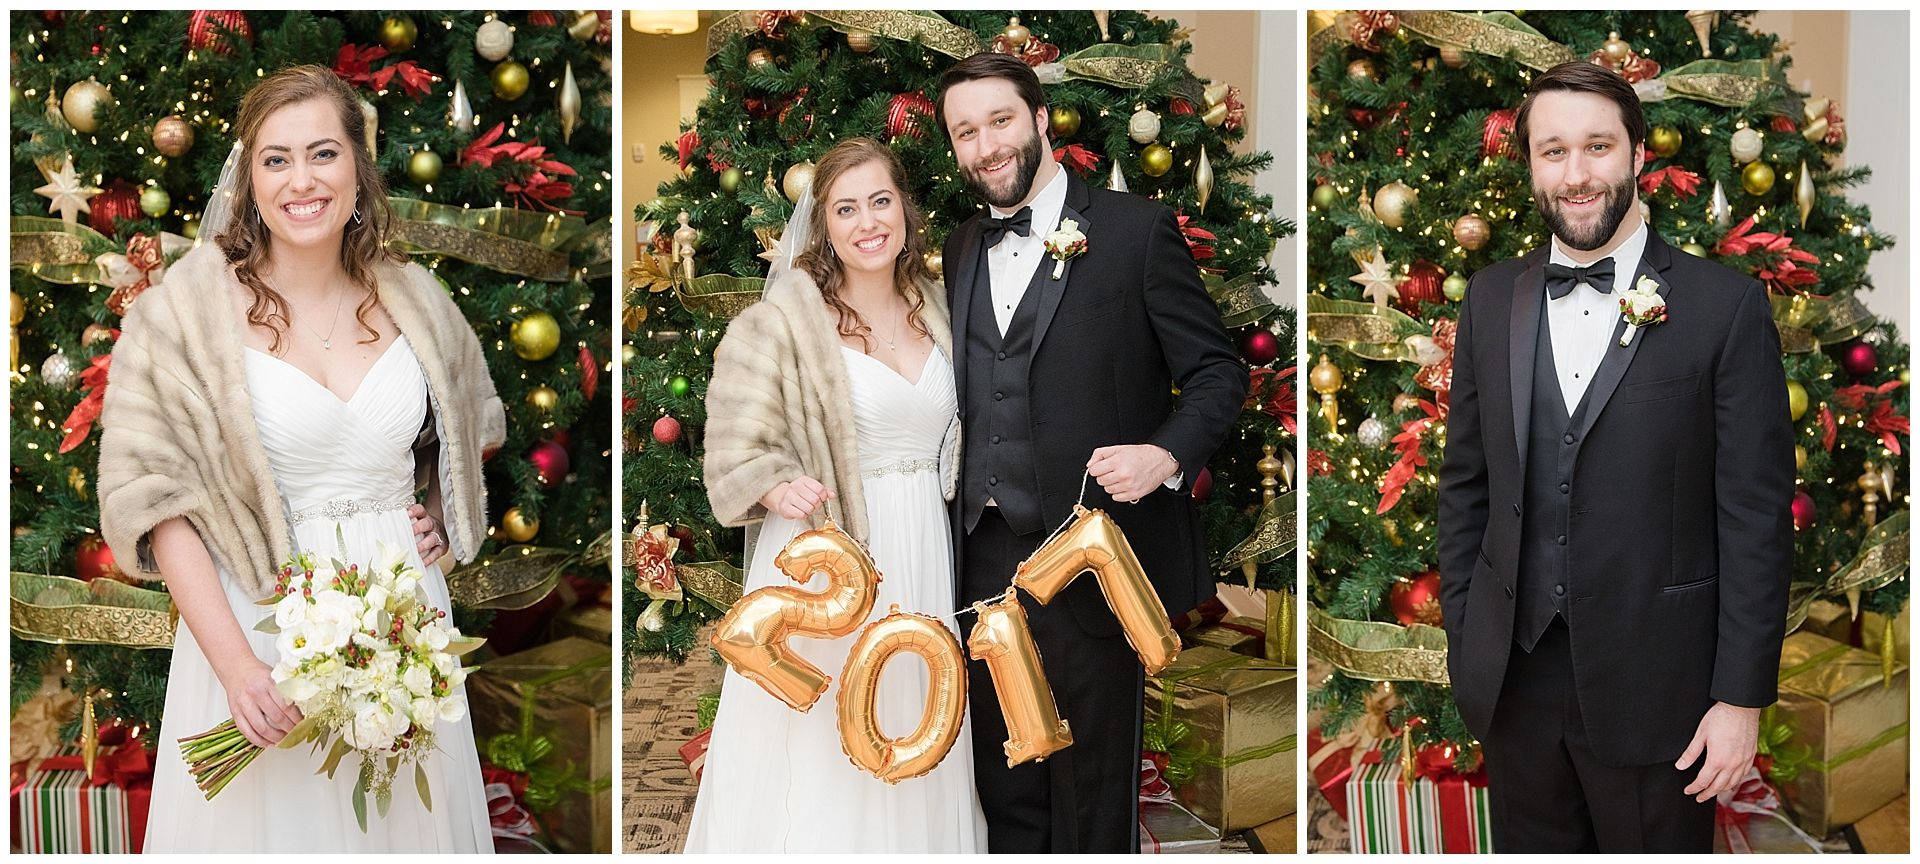 New Year S Eve Wedding At Cooper Creek Event Center And All Saints Catholic Church In Cincinnati